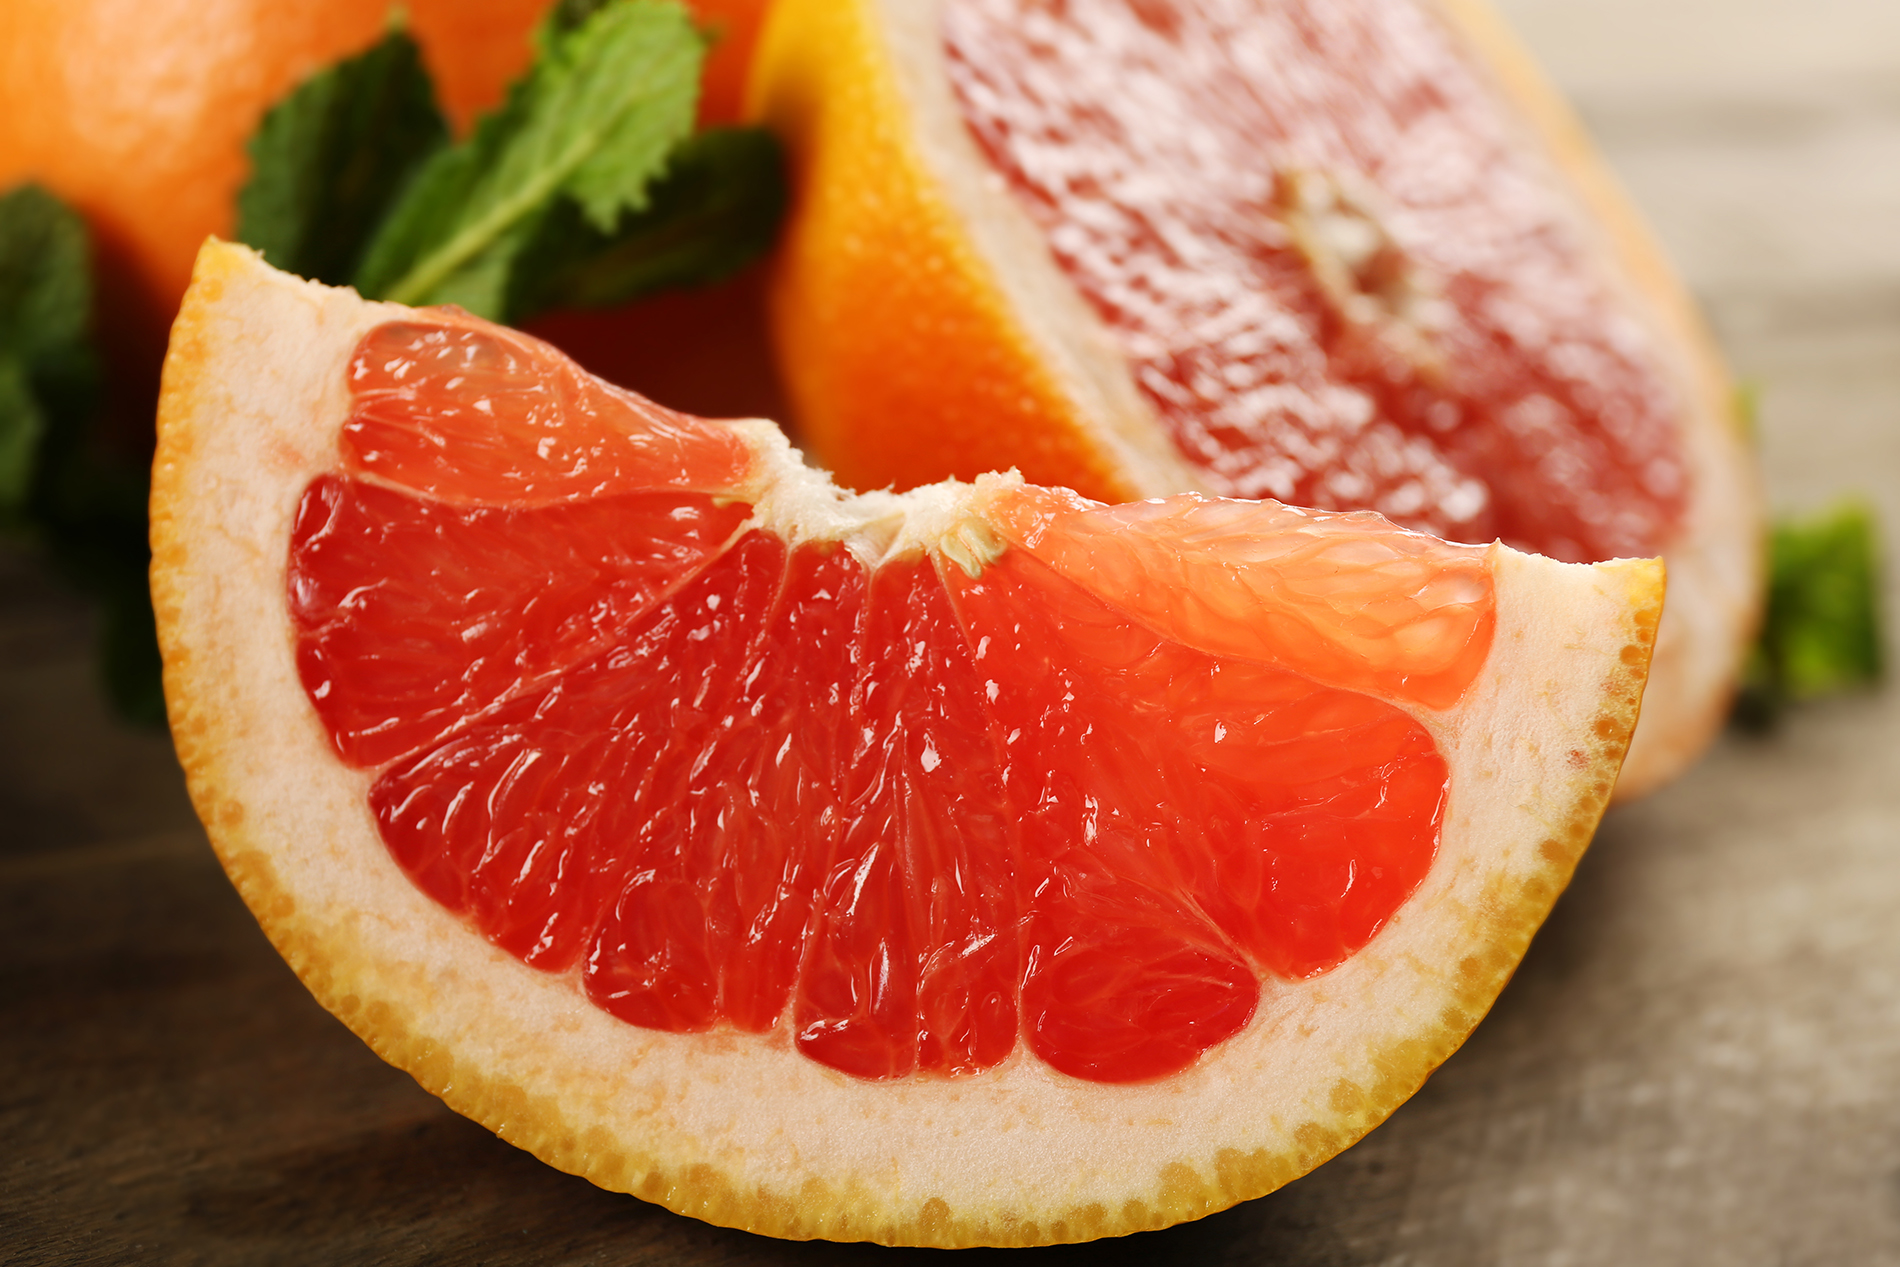 Red pomelo 53838